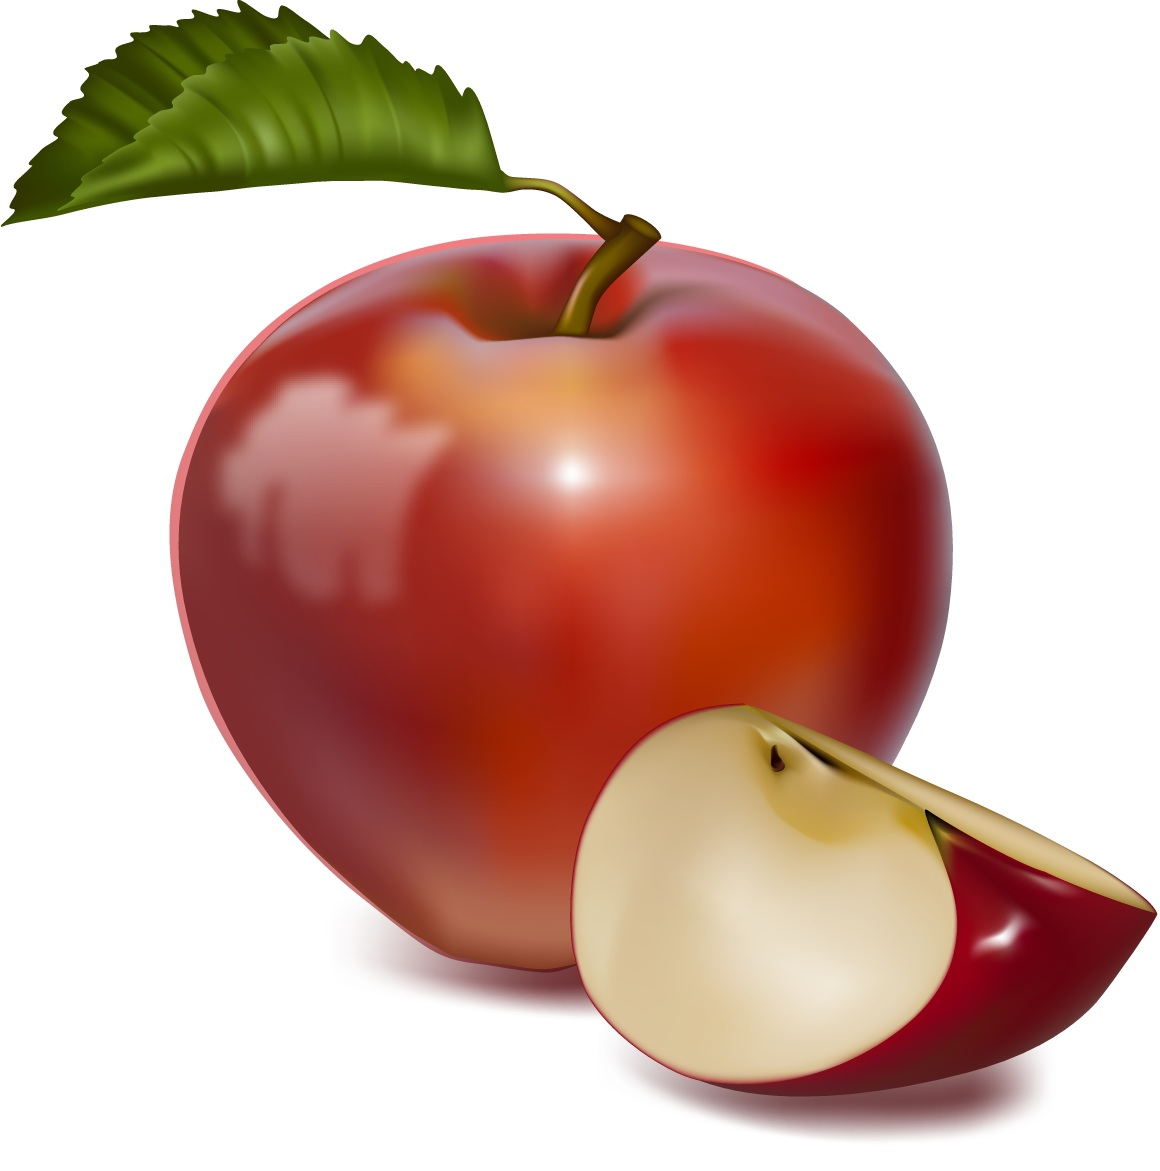 Apple food clipart 20 free Cliparts | Download images on ...